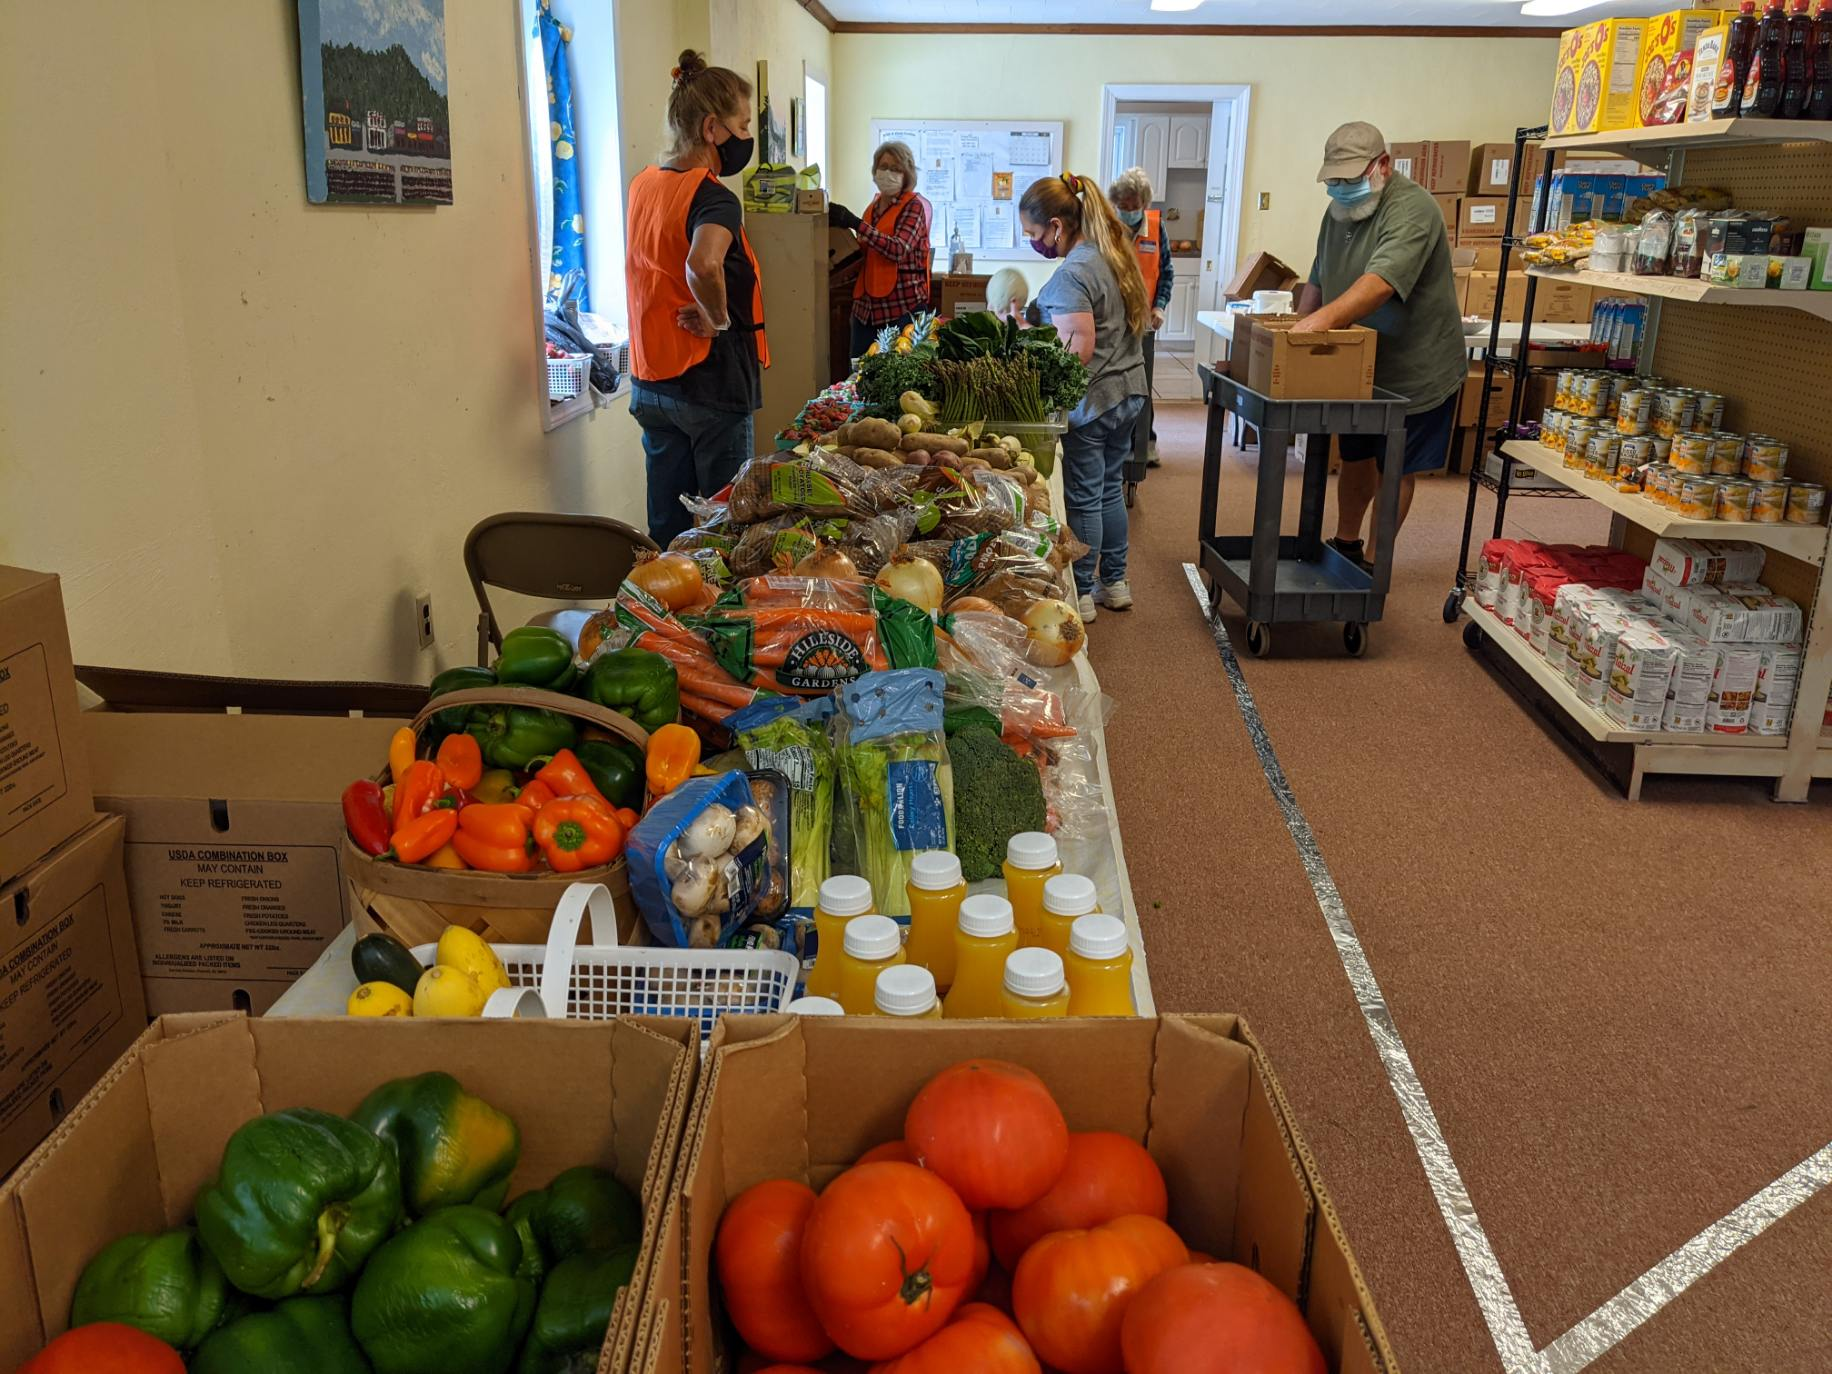 Connecticut's disparities are clear: Ending hunger requires new solutions